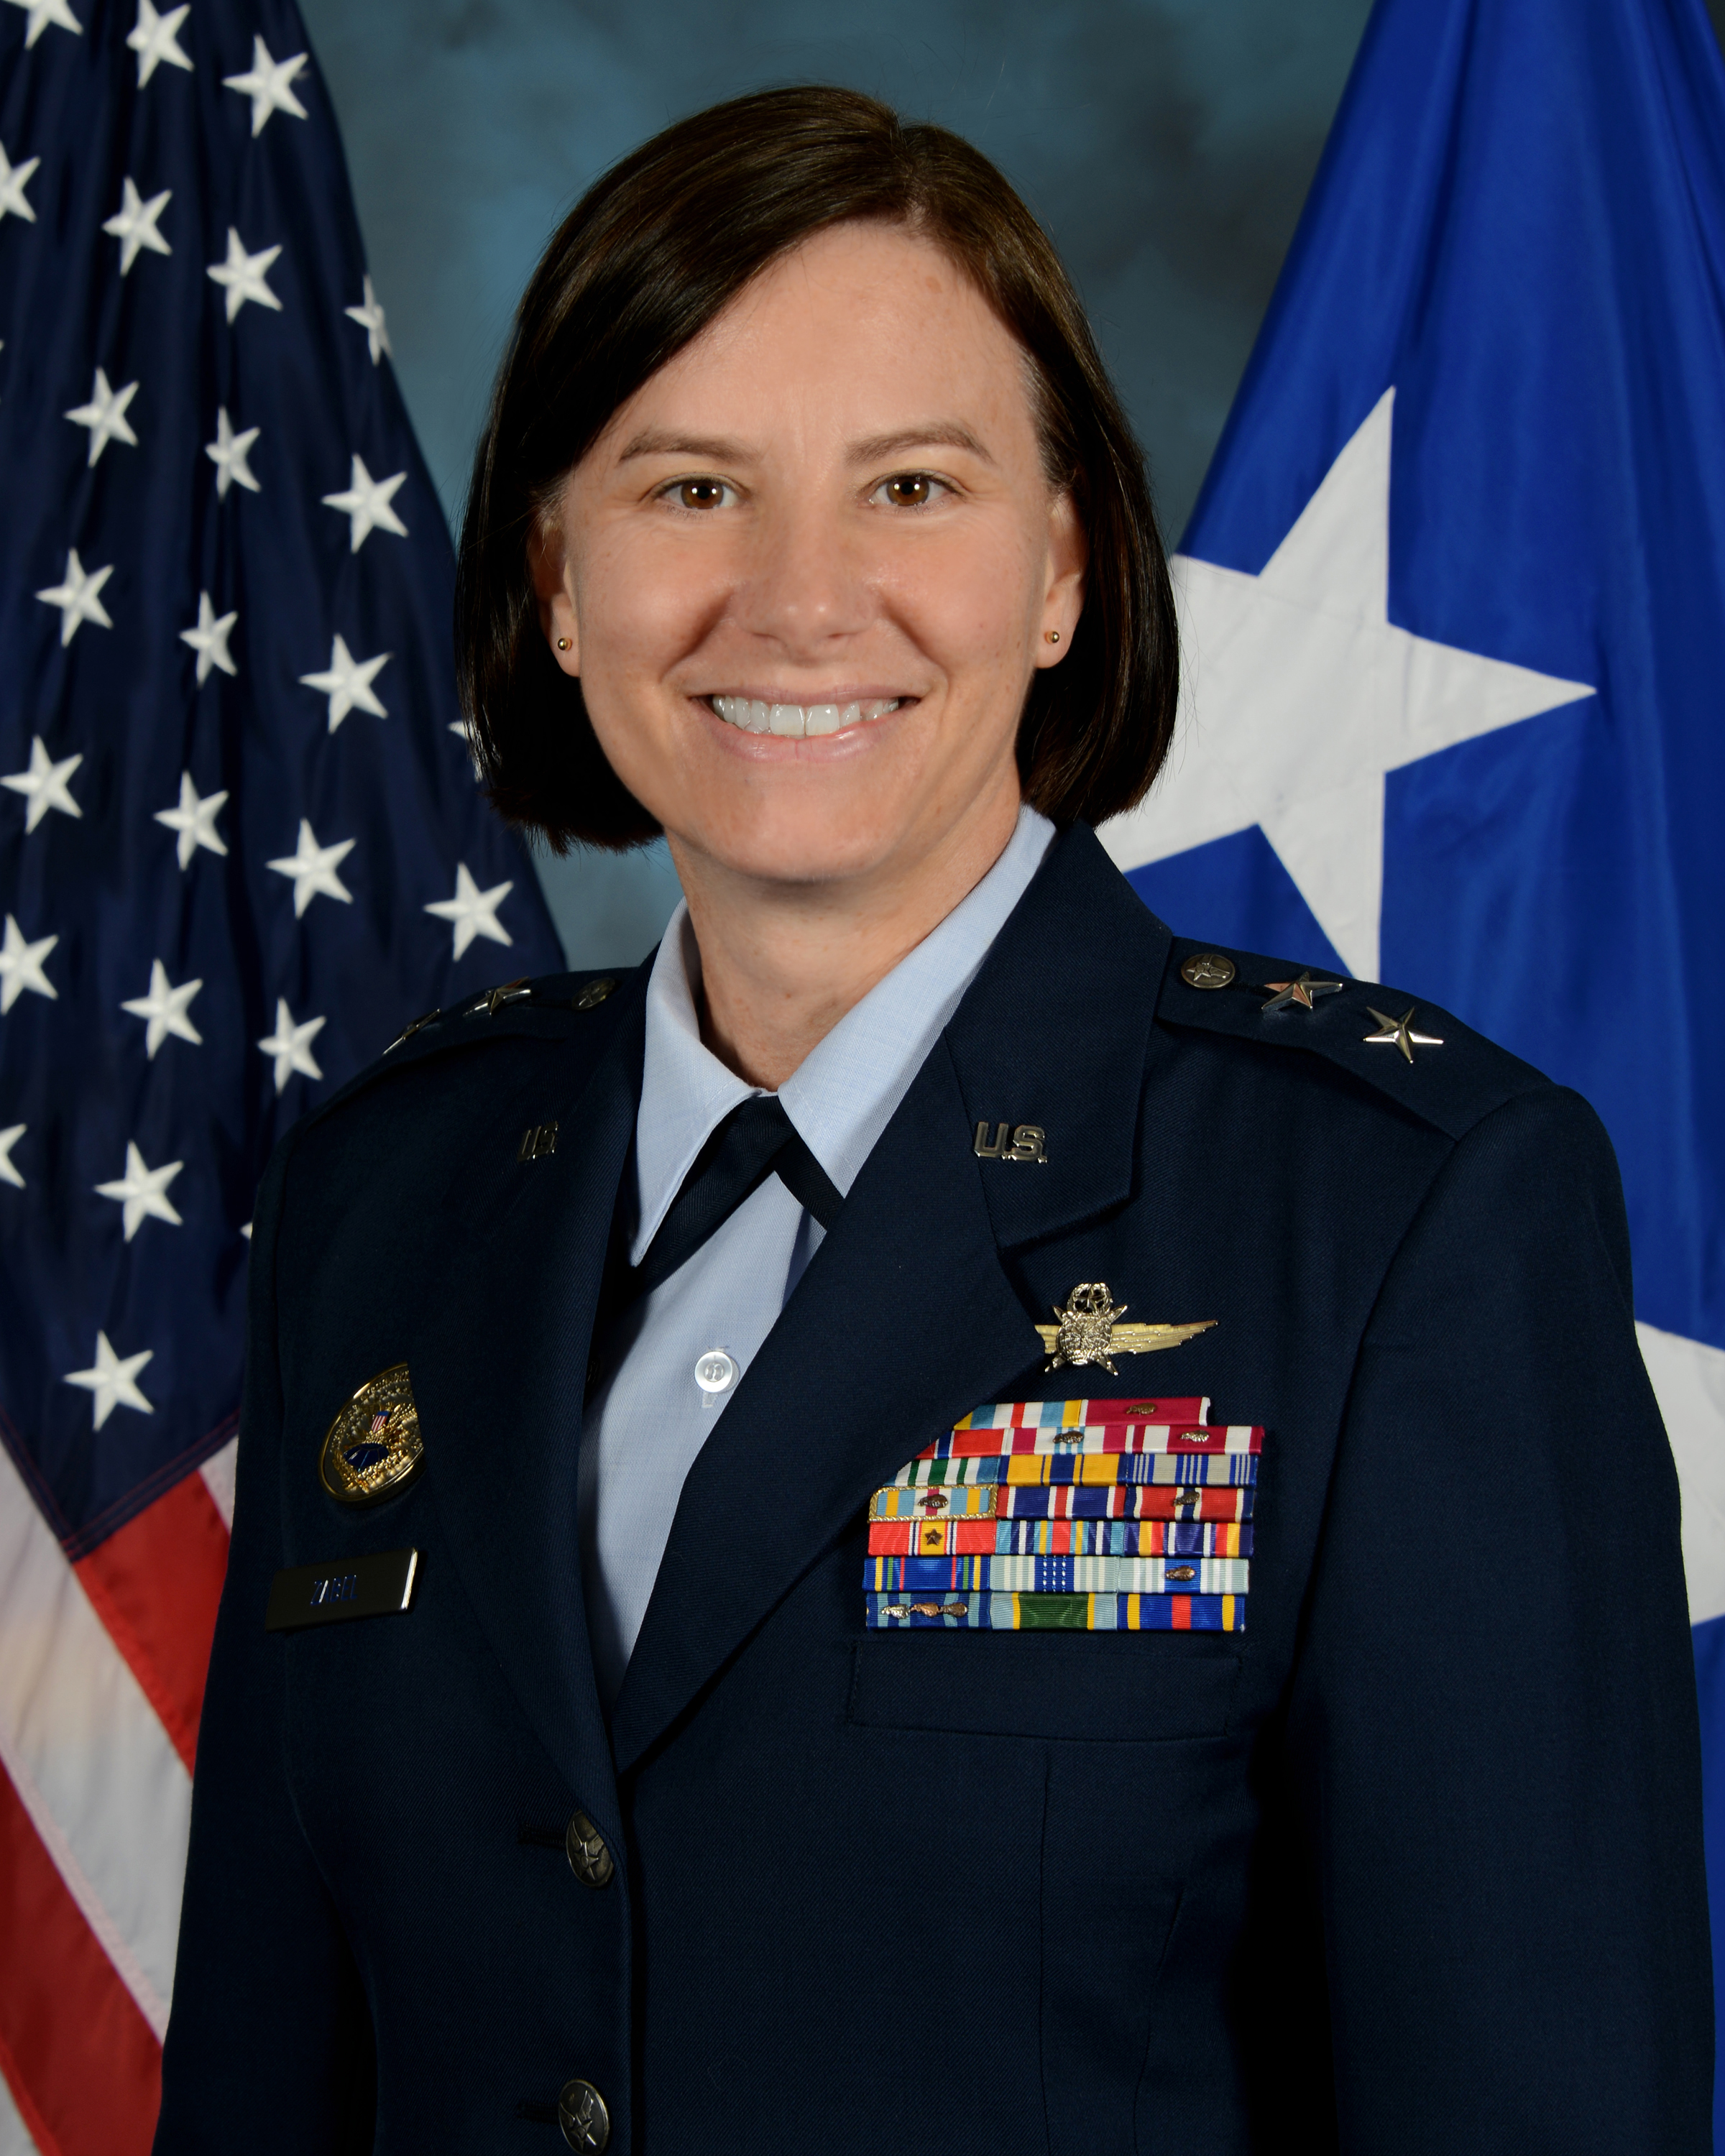 Major General Sara  Zabel